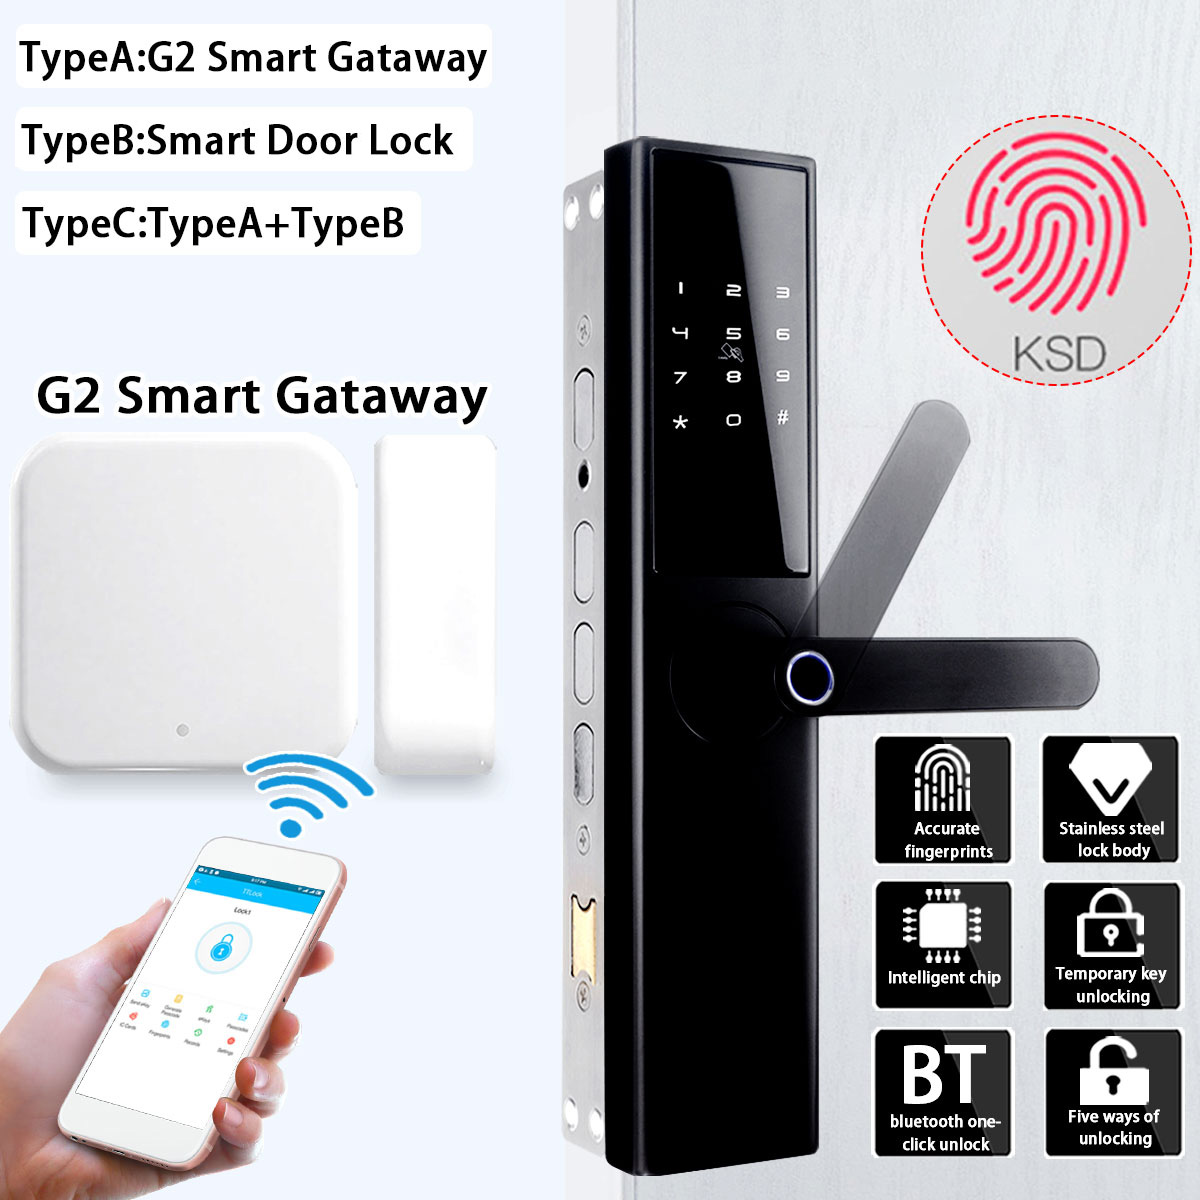 Smart Door Lock Intelligent Electronic Lock Fingerprint Verification With bluetooth Card APP Key 5 Ways with G2 Smart Gateway